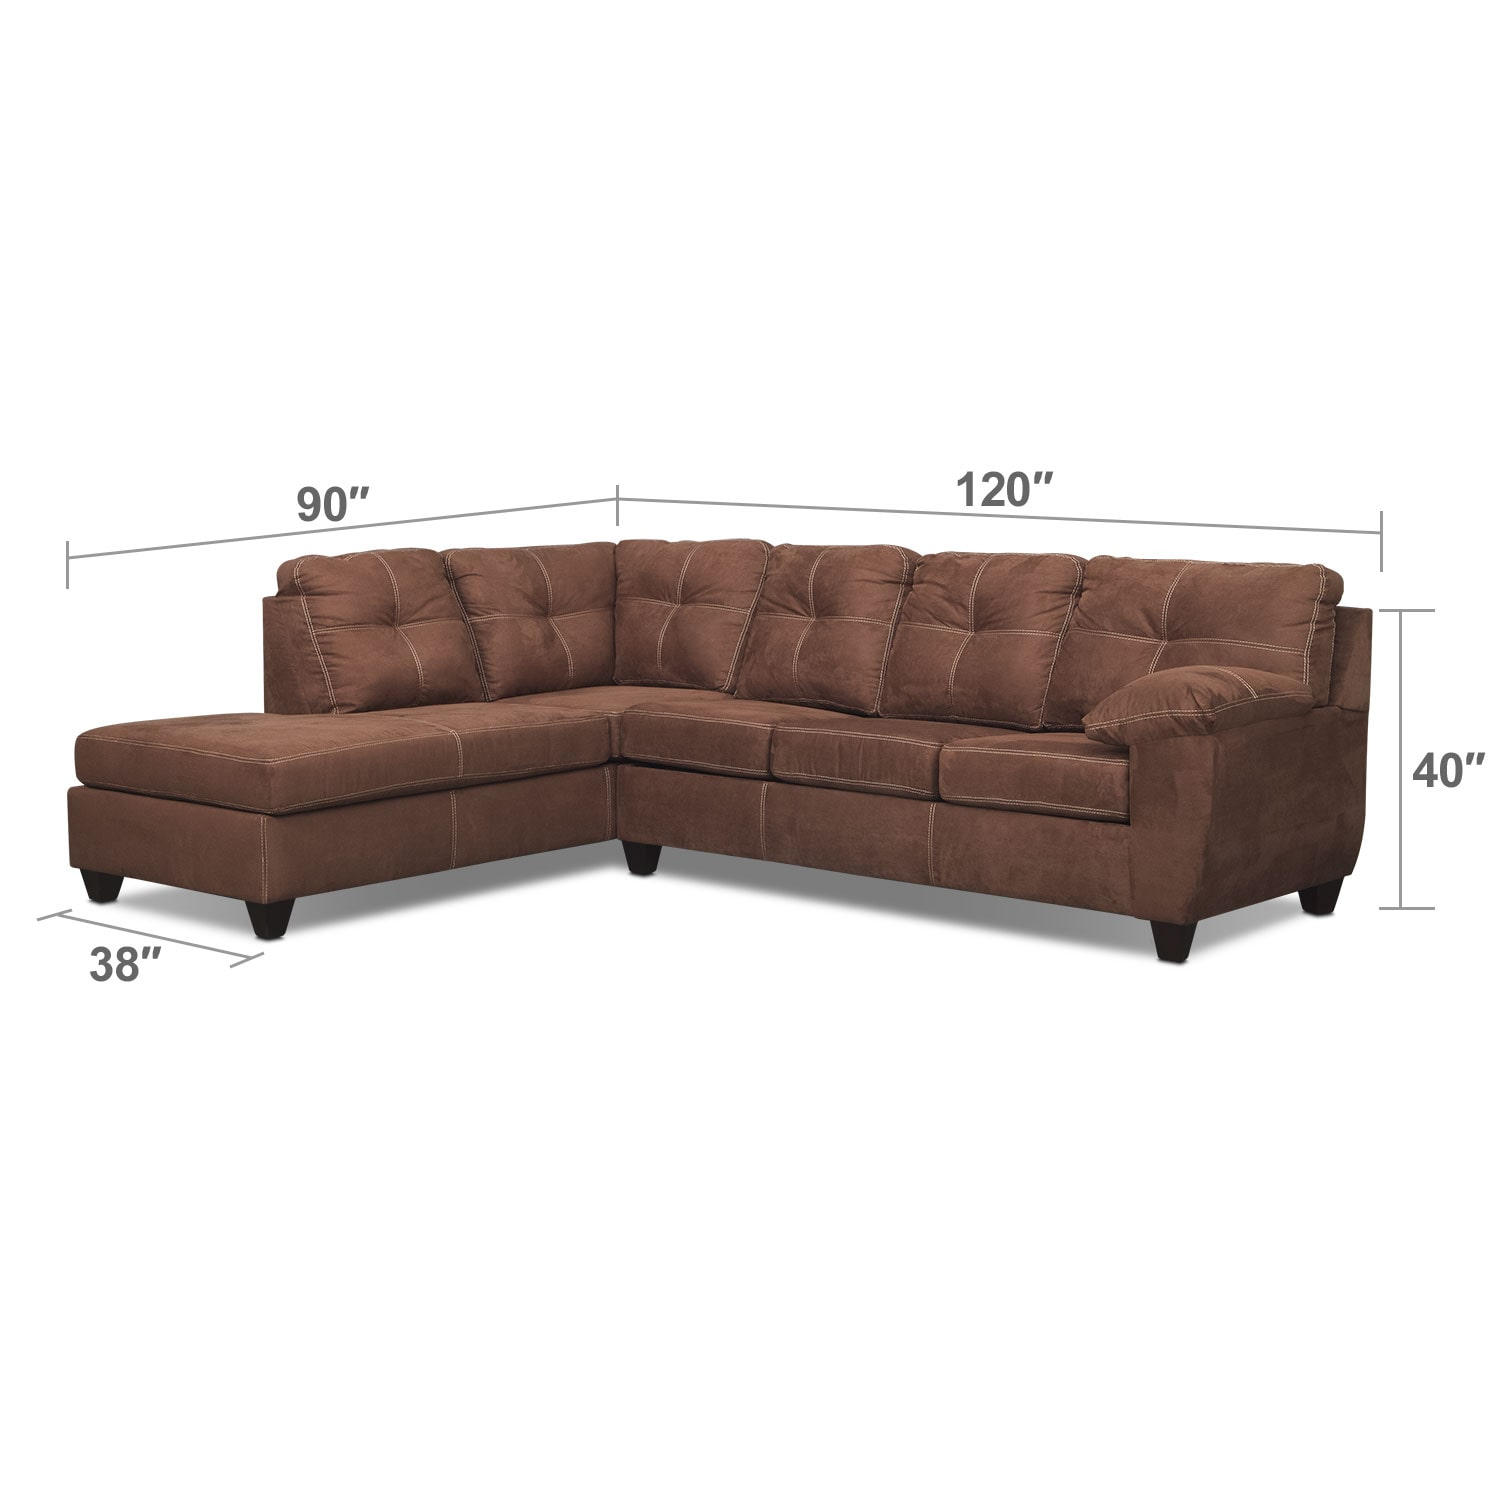 Living Room Furniture - Rialto 2-Piece Innerspring Sleeper Sectional with Left-Facing Chaise - Coffee